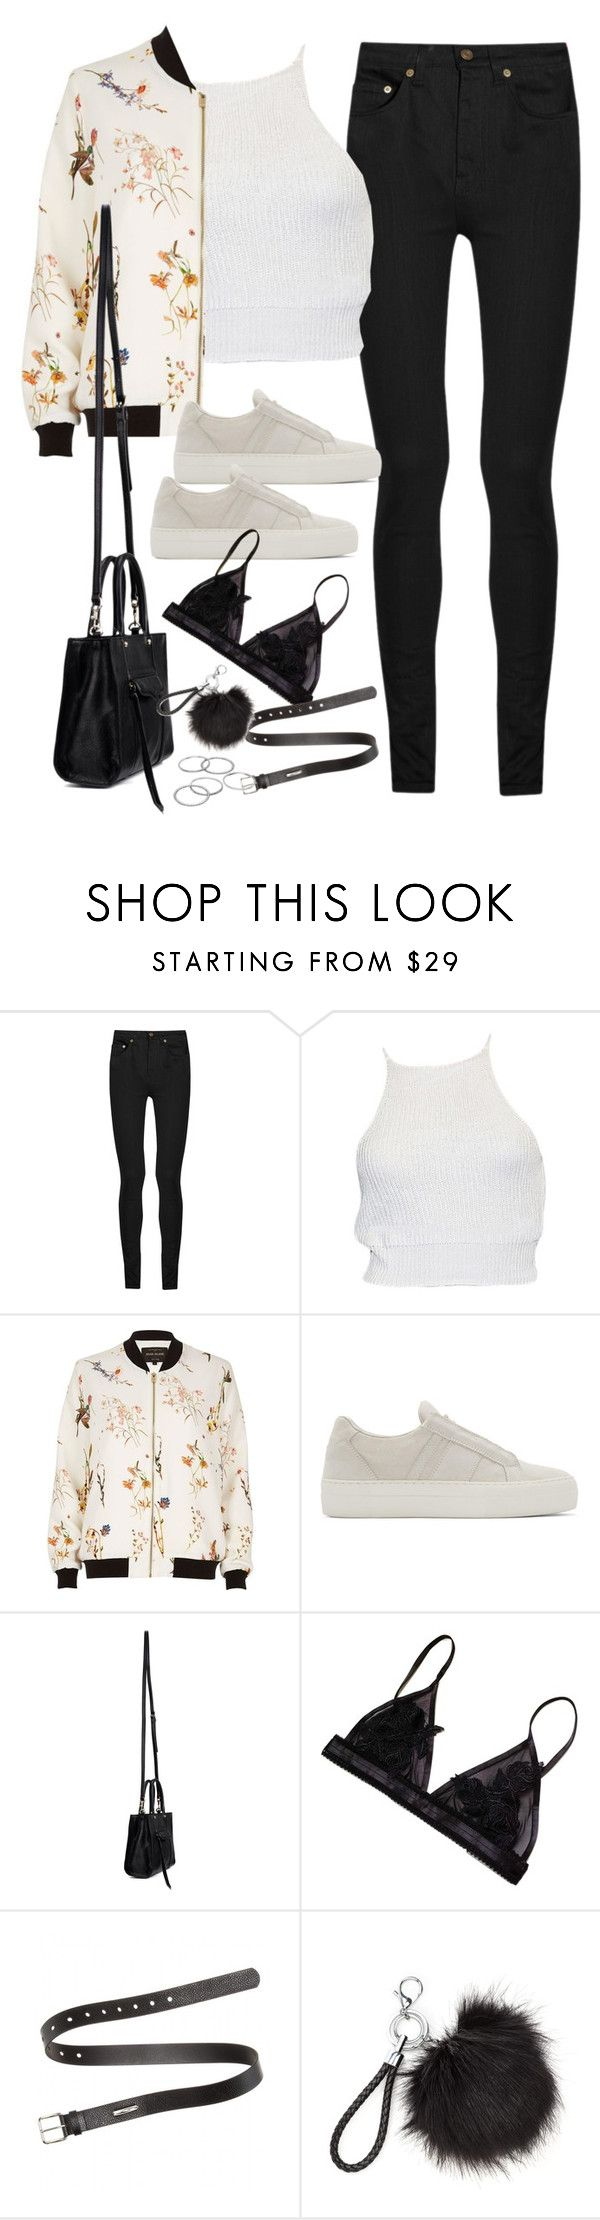 """""""Untitled#4585"""" by fashionnfacts ❤ liked on Polyvore featuring Yves Saint Laurent, River Island, Helmut Lang, Rebecca Minkoff, Acne Studios and Apt. 9"""